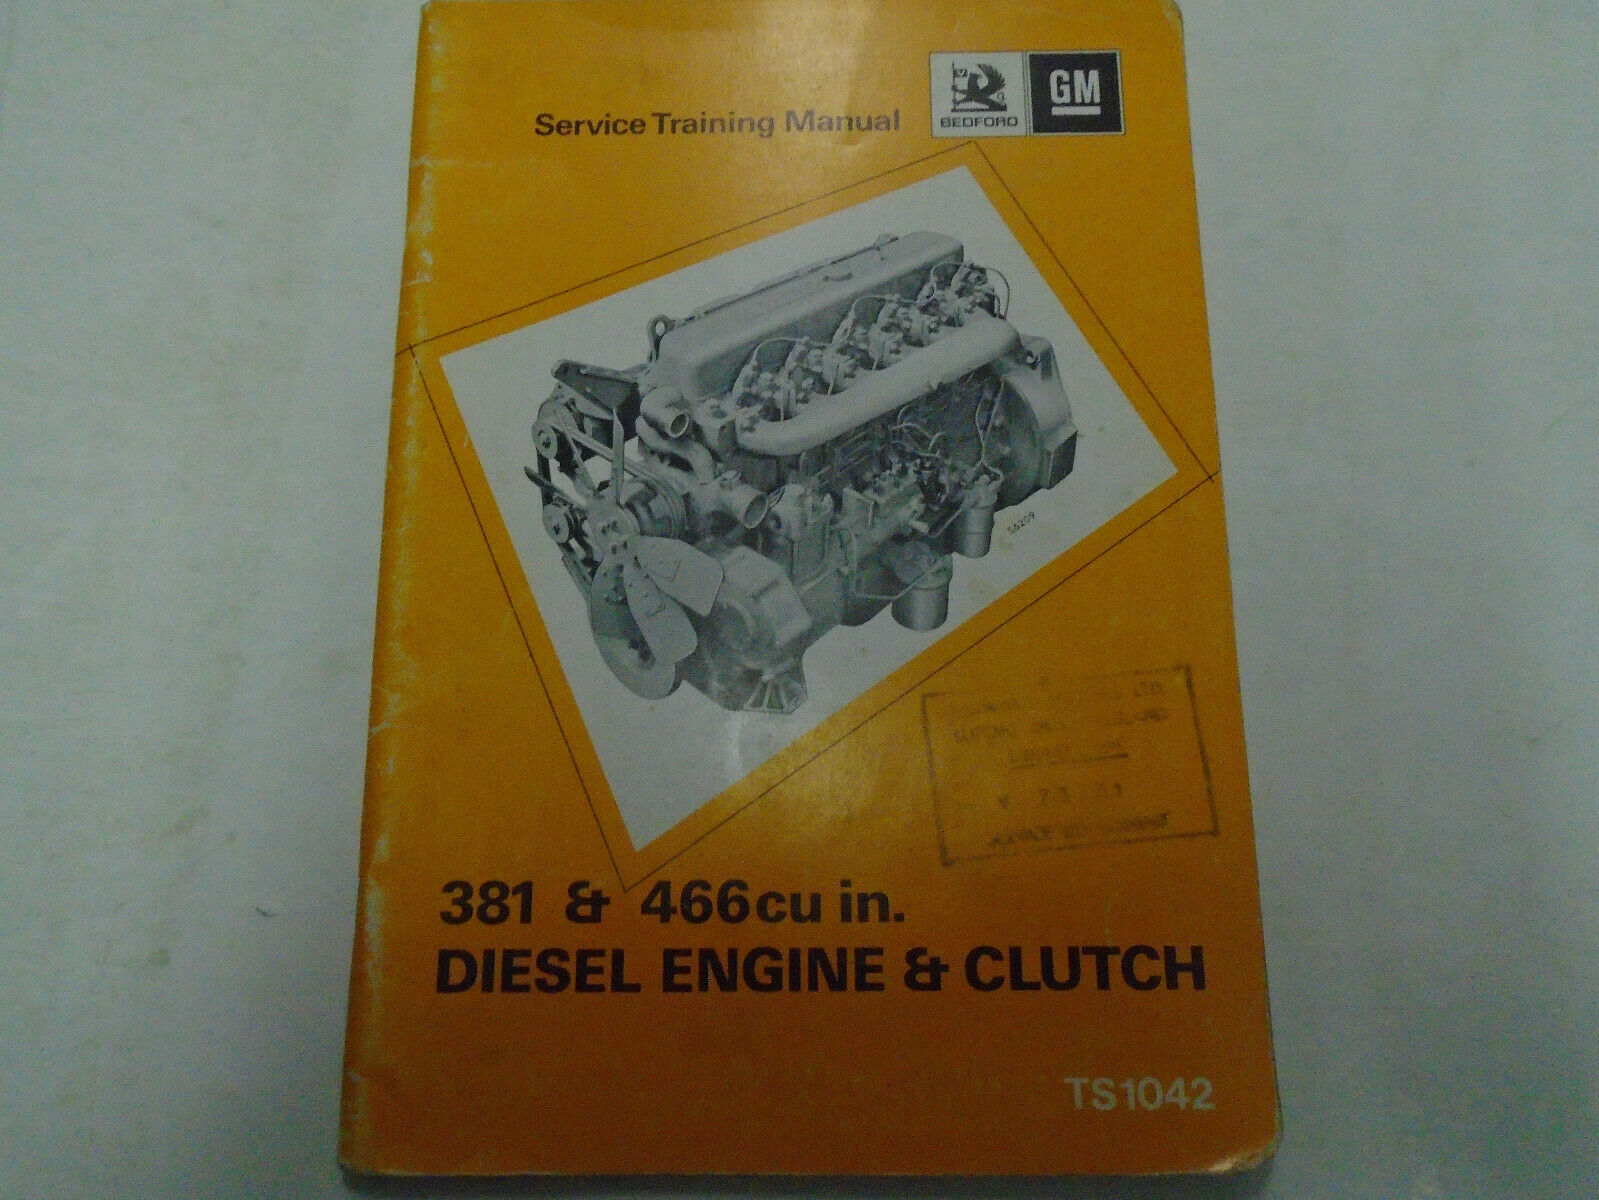 Primary image for 1971 GM 381 & 466 cu In Diesel Engine Clutch Service Repair Shop Training Manual